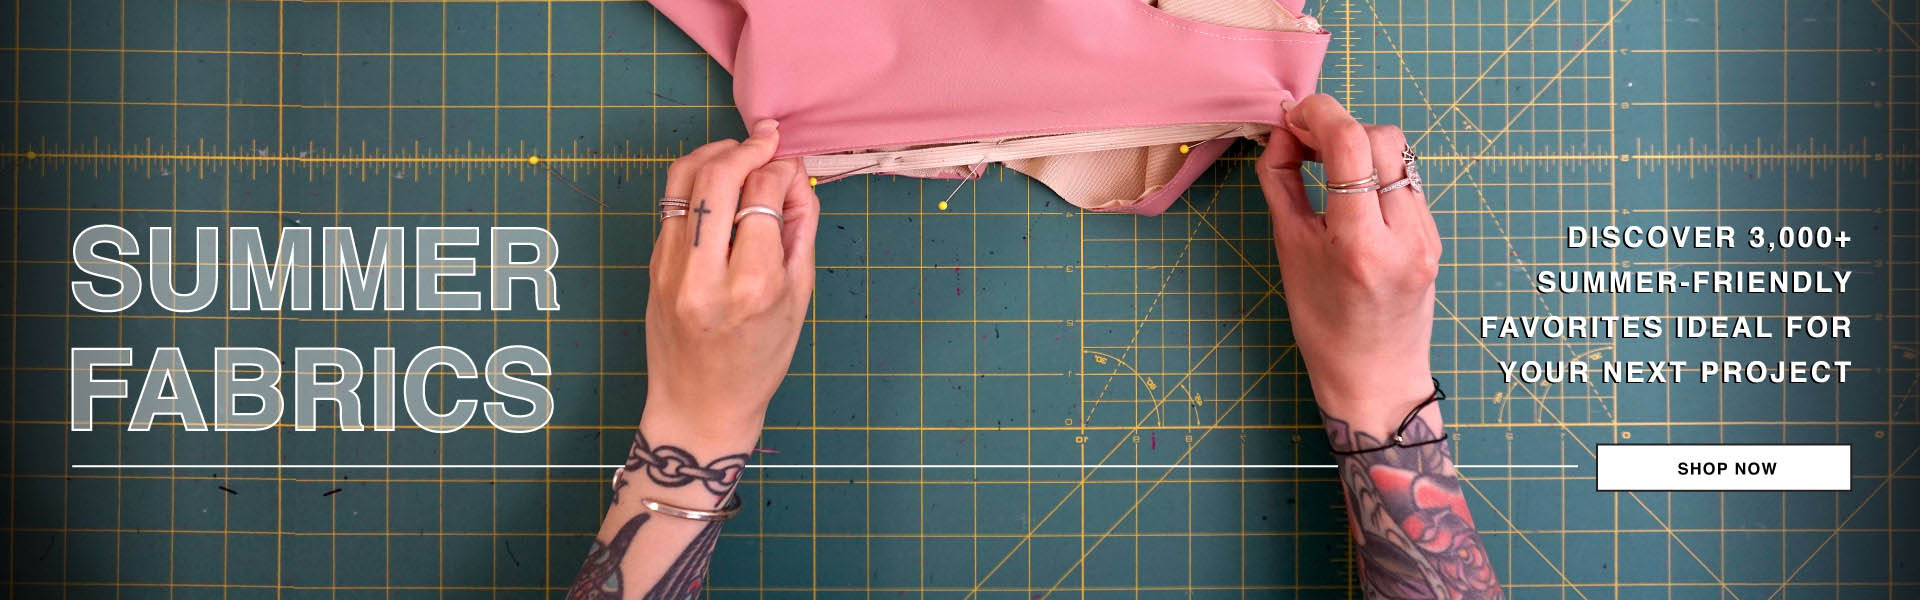 Shop Summer Weight Fabrics for Warm Weather Projects Today!